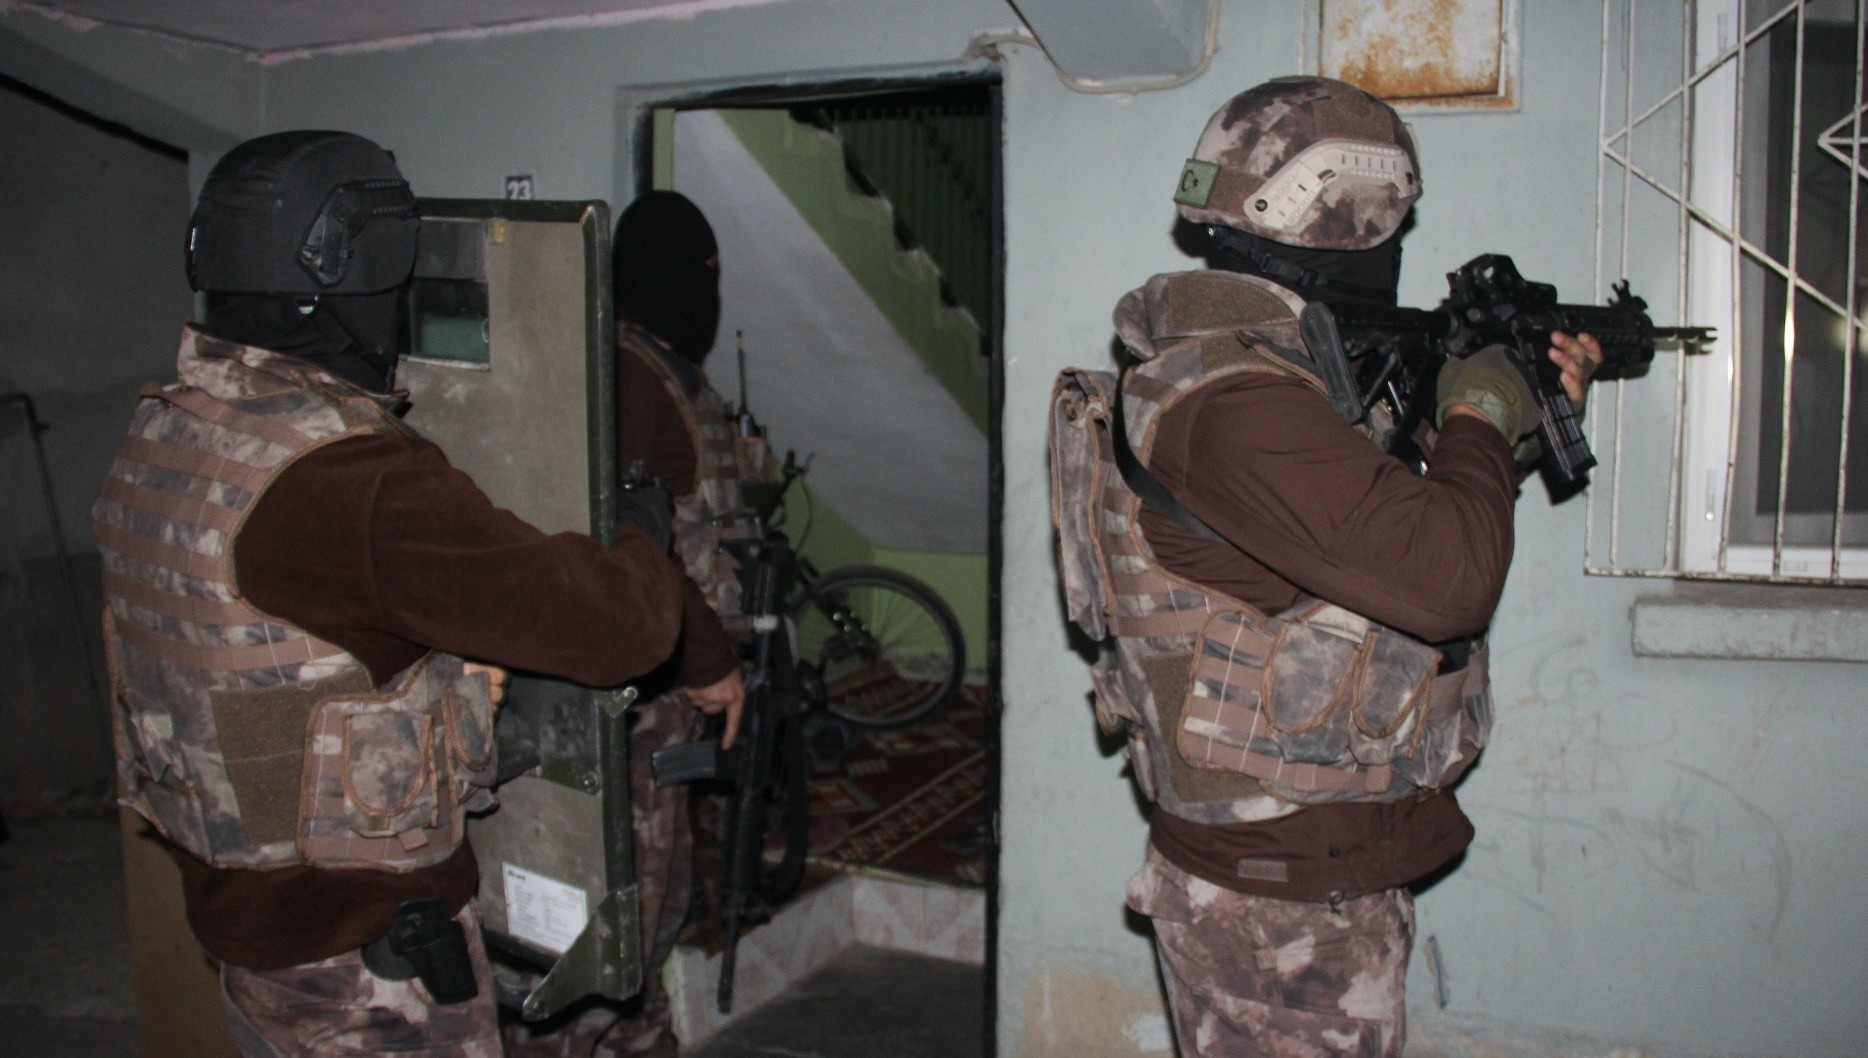 Counterterrorism police raid a house to capture Daesh suspects in the southern city of Adana in this undated photo. Some 2,000 suspects were arrested and 7,000 others were deported in operations against Daesh.